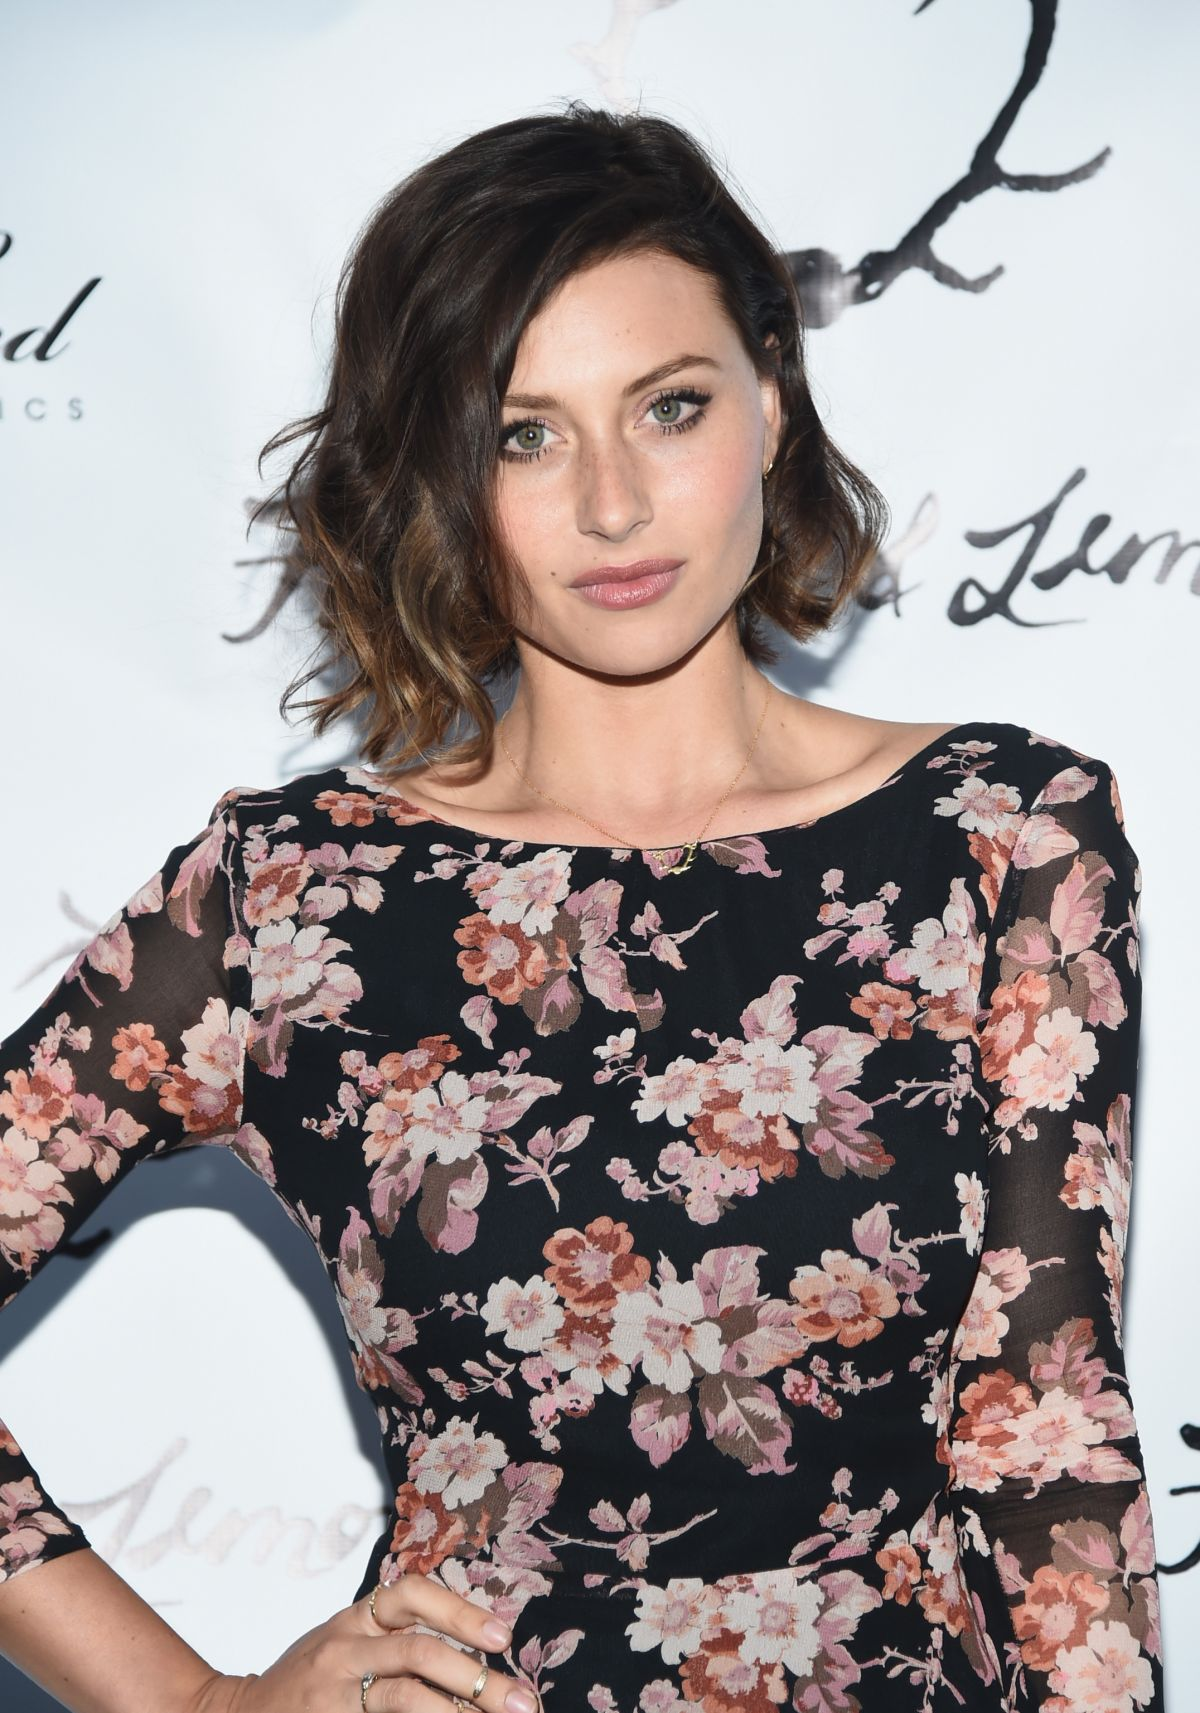 ALY MICHALKA at For Love and Lemons Skivvies Party in Los Angeles